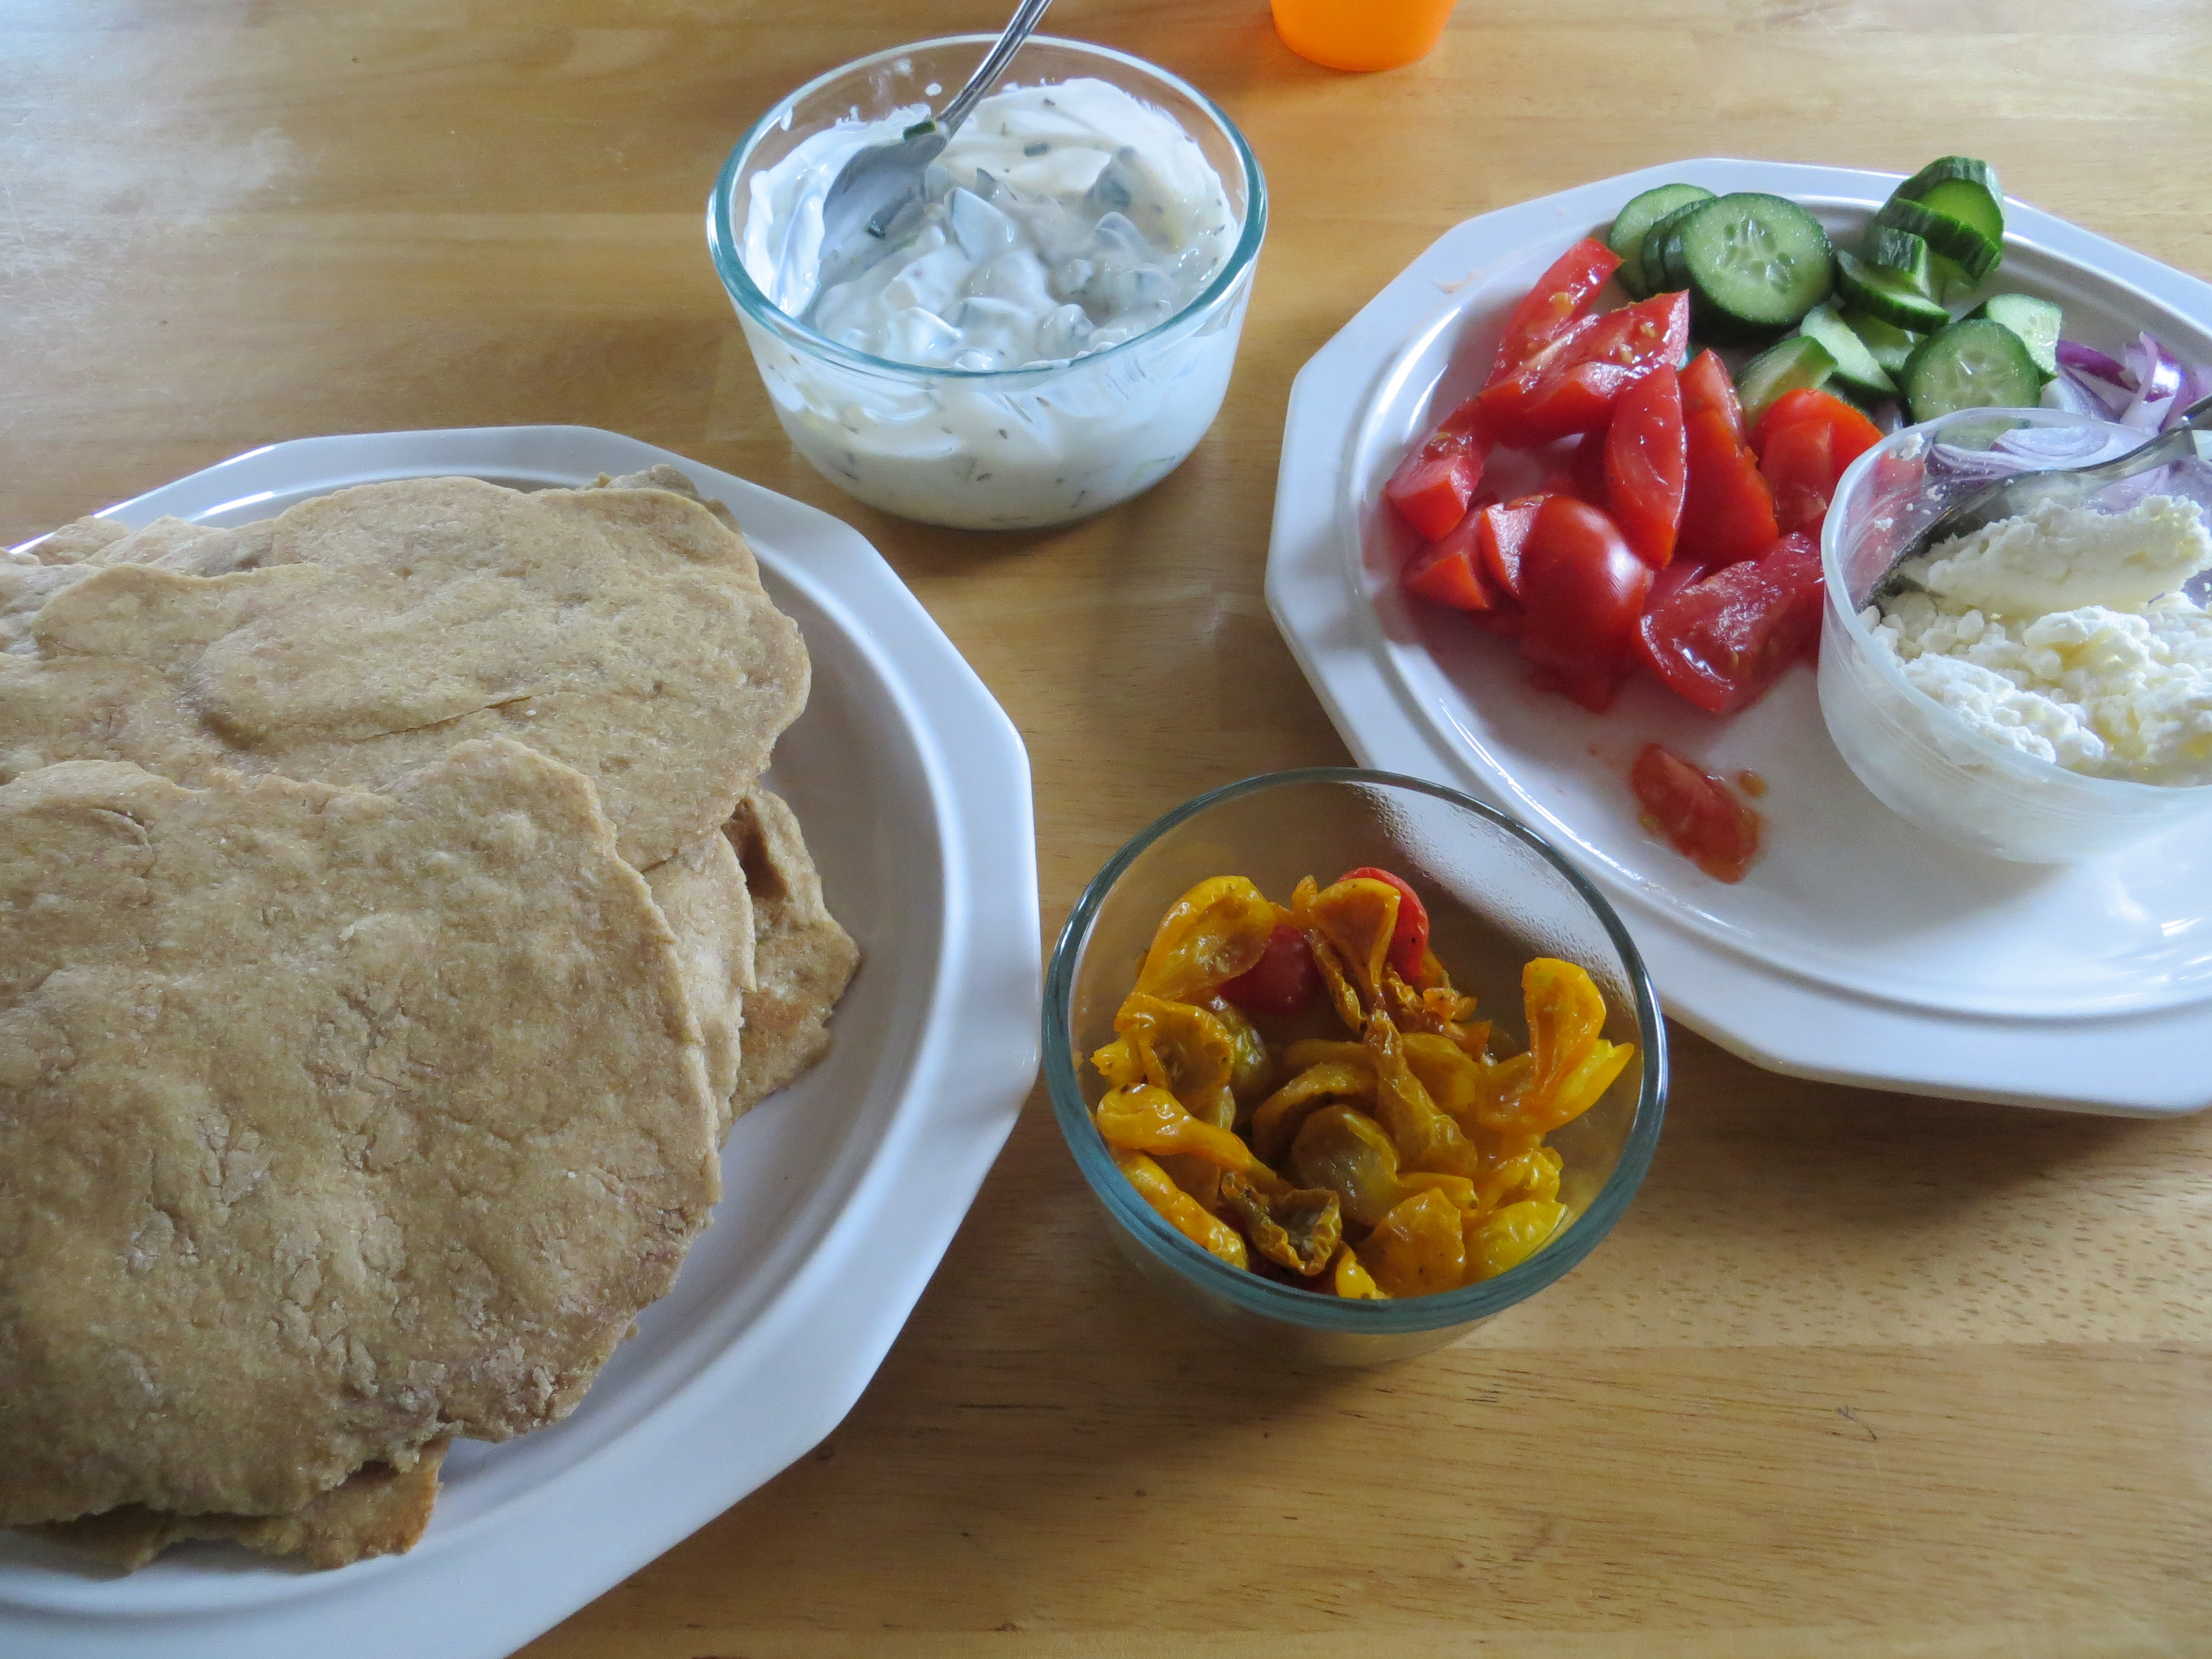 Quick and Easy Greek Inspired Week Night Meal!